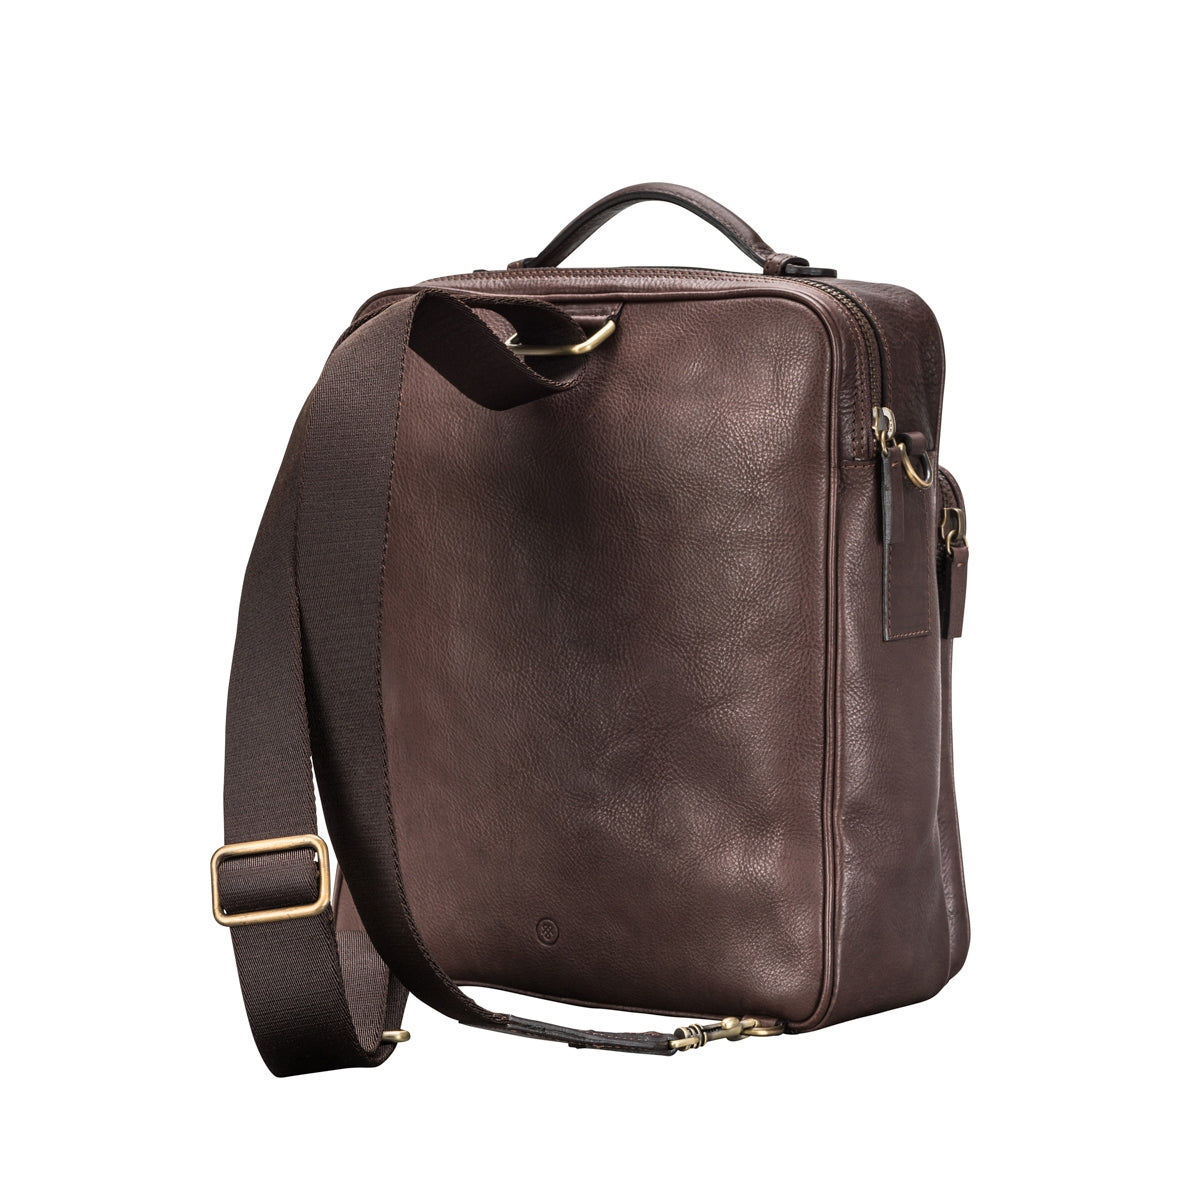 Image 5 of the 'SantinoL' Men's Brown Leather Convertible Backpack Shoulder